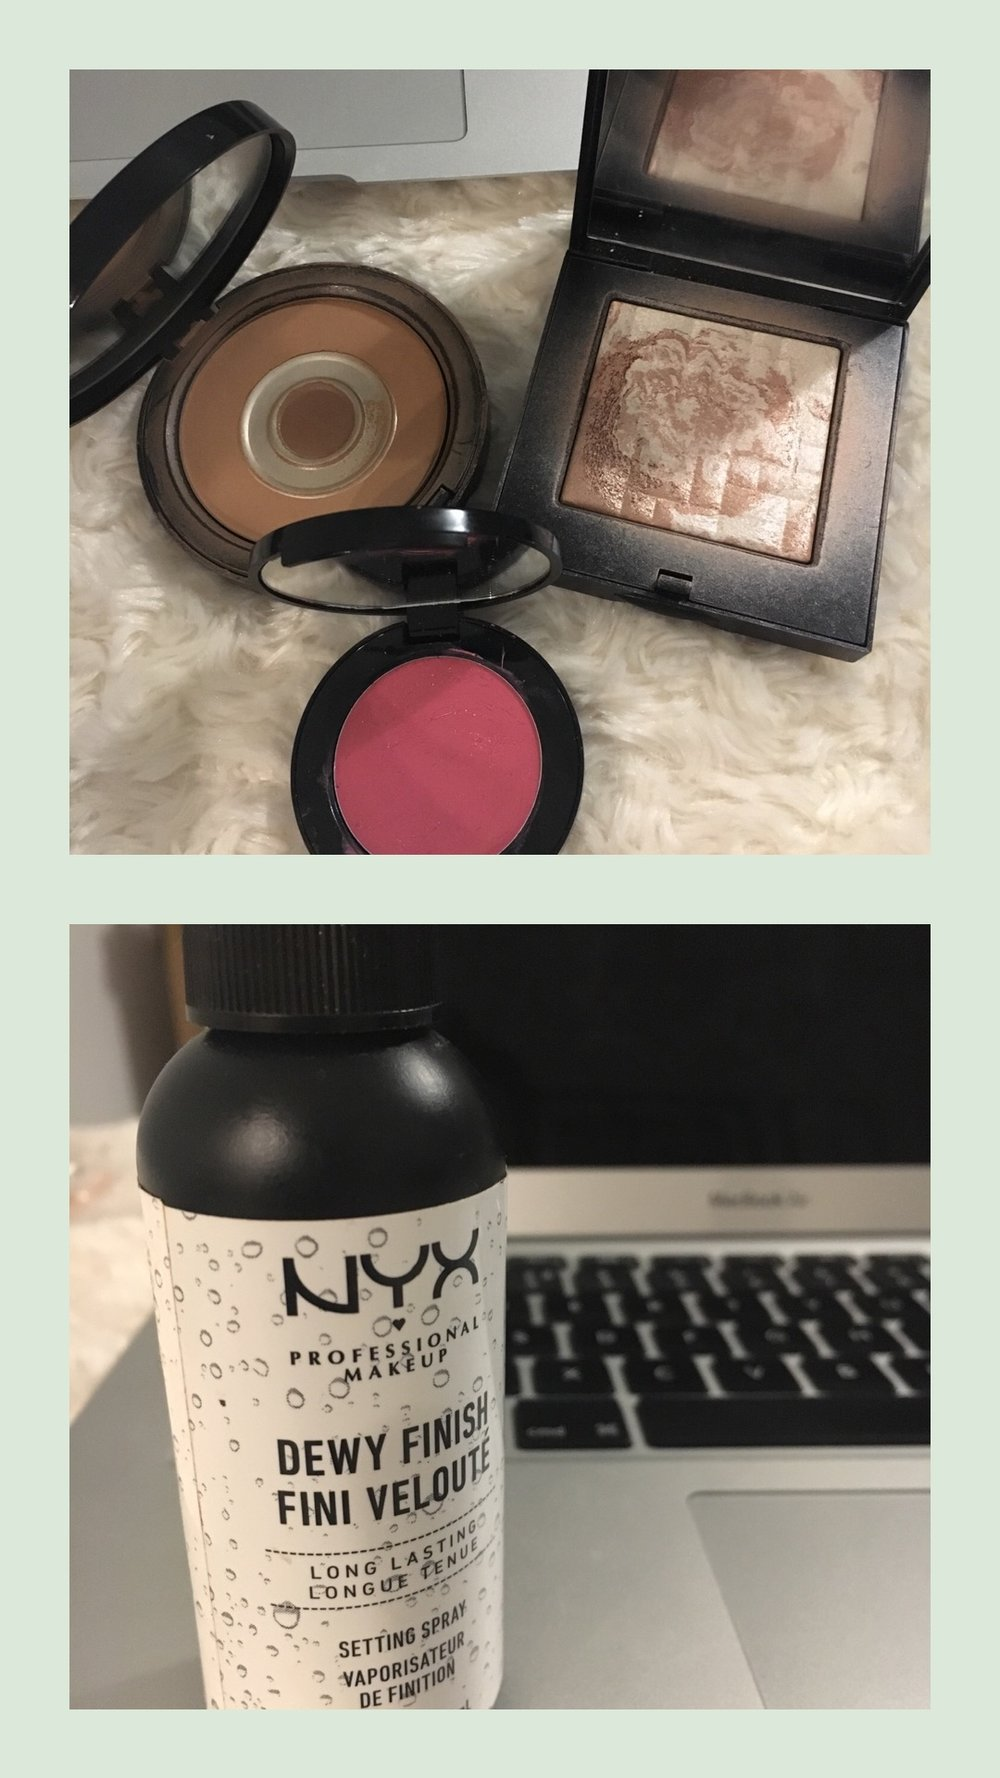 I bronze throughout the year and so it needs to be a good one and not make me break out. I always re buy this one and the pot rouge is gorgeous. This shimmer brick is lovely but you can buy cheaper ones. Try the  Soap and Glory for £10.  Plus buy this  Dewy fixing spray from NYX,  gives you a little glow! and its only £7.00